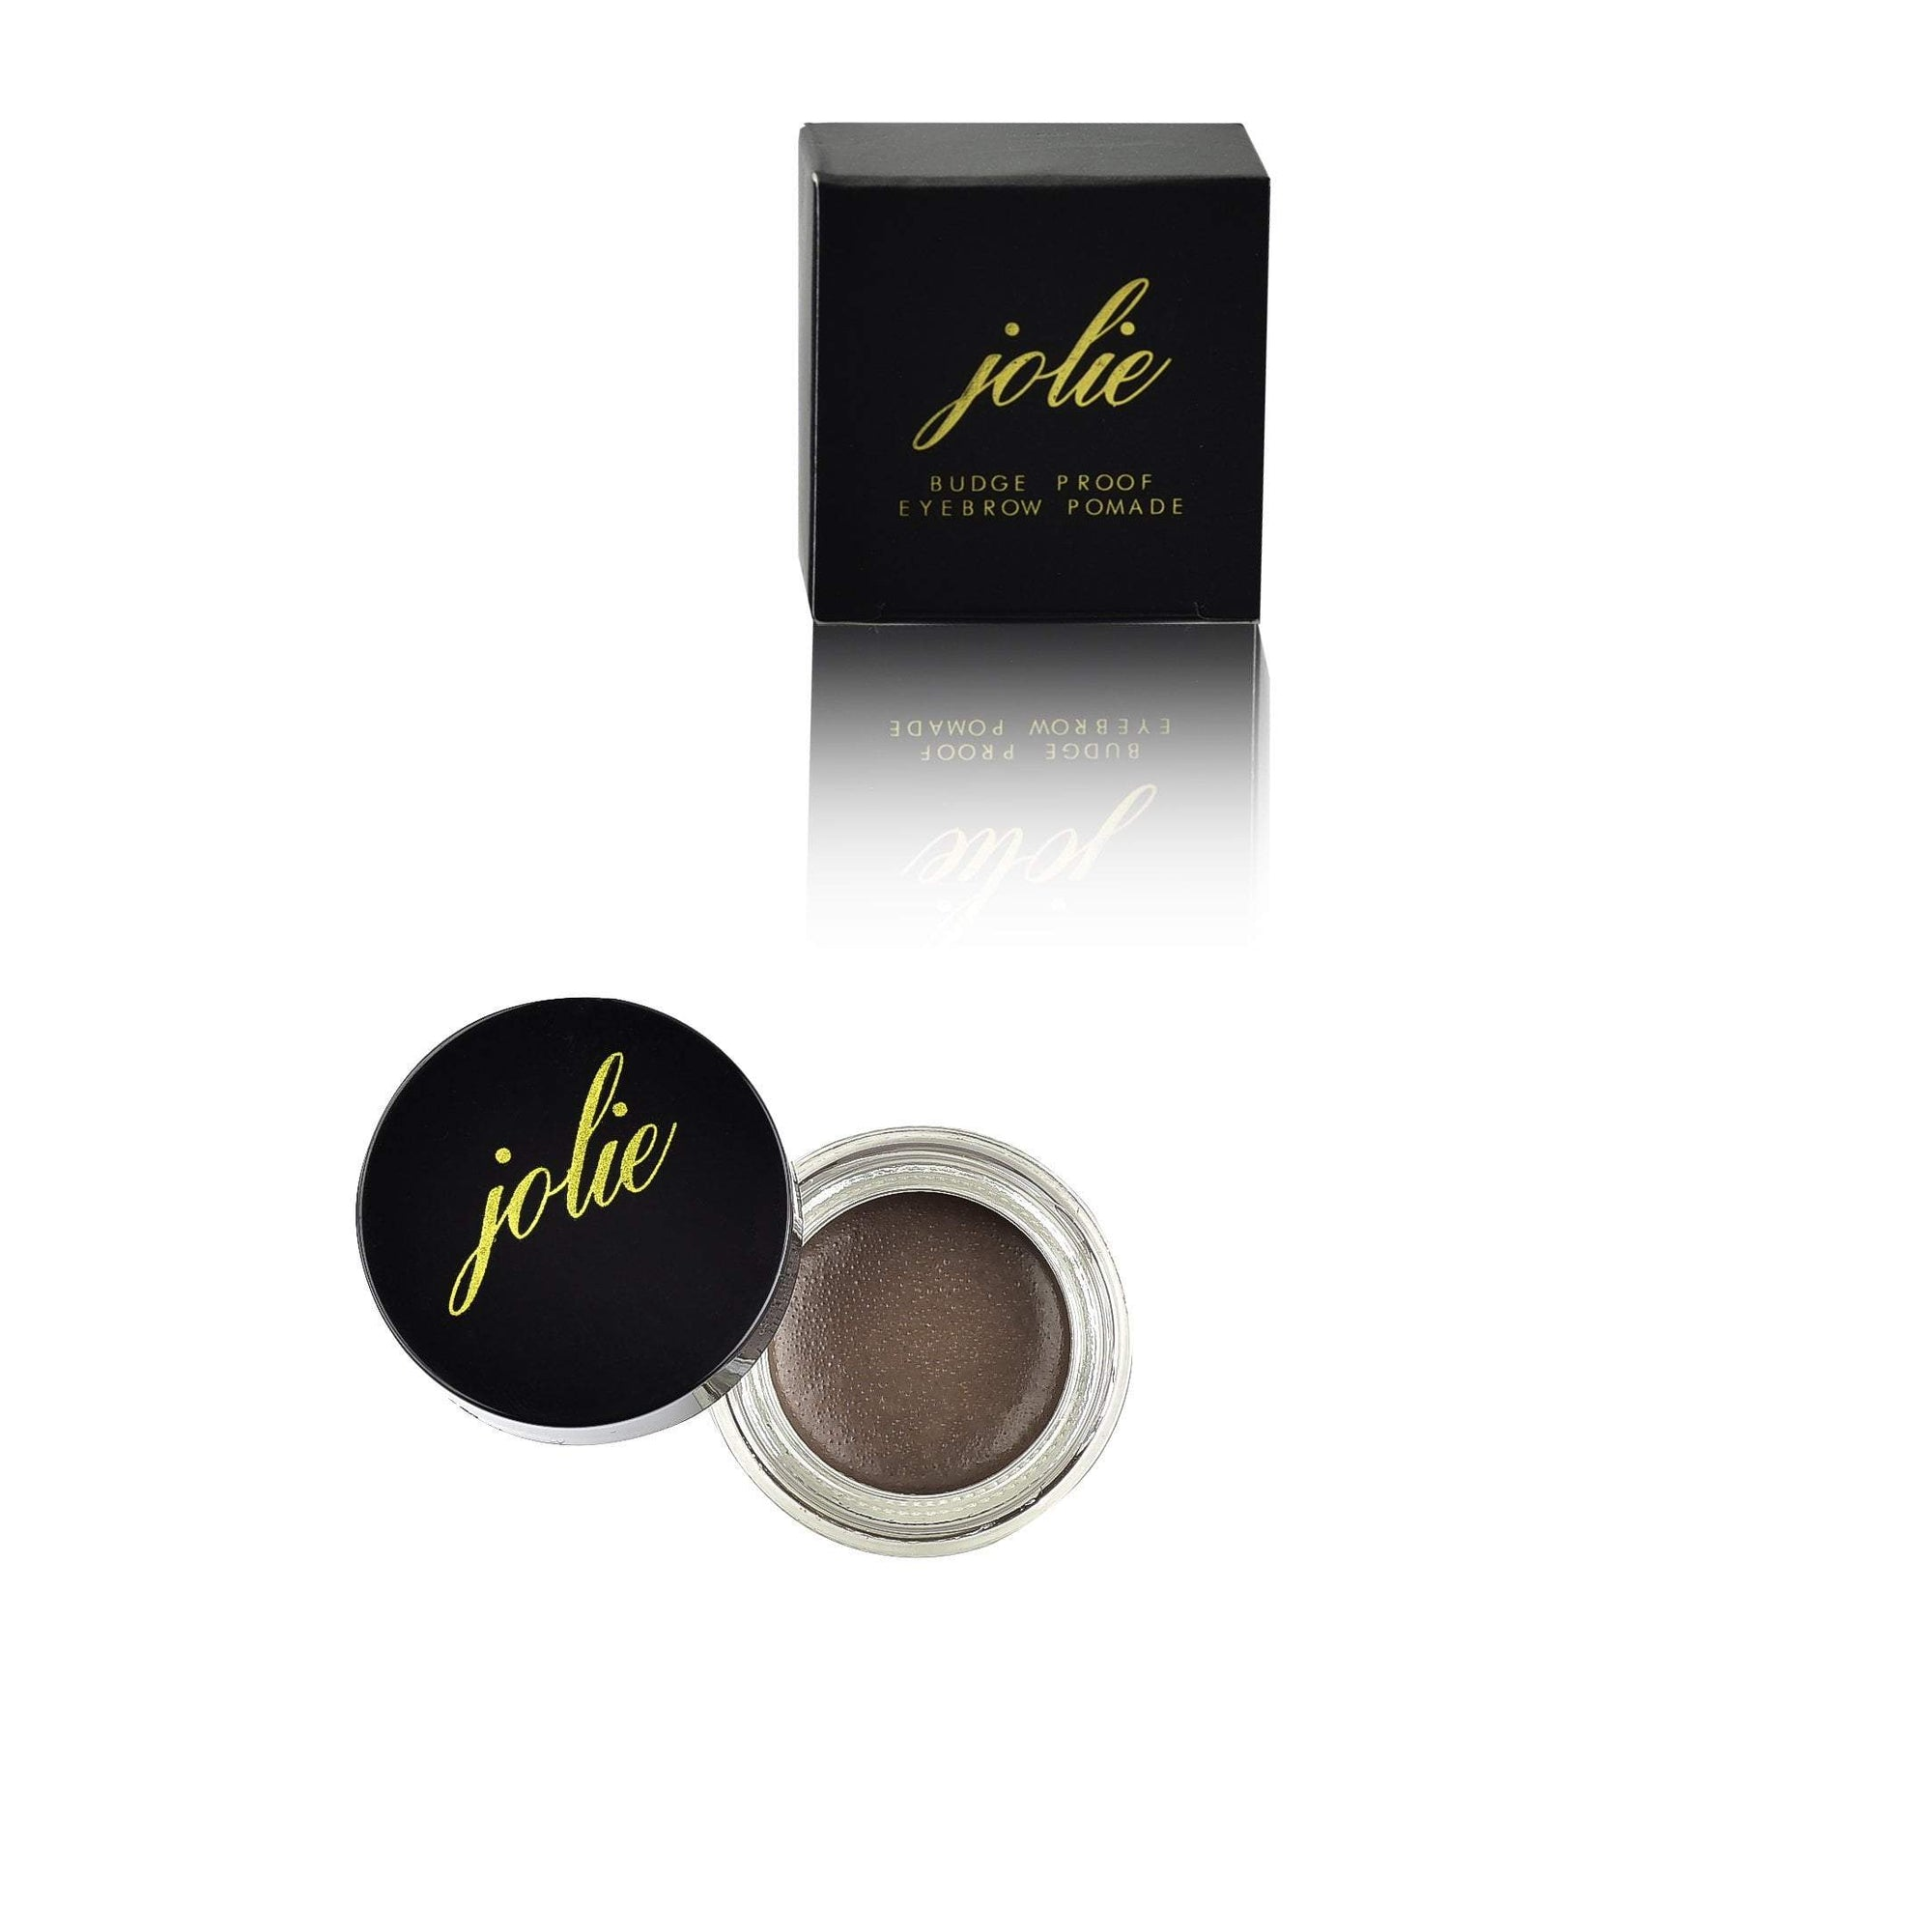 Budge Proof Brow Pomade